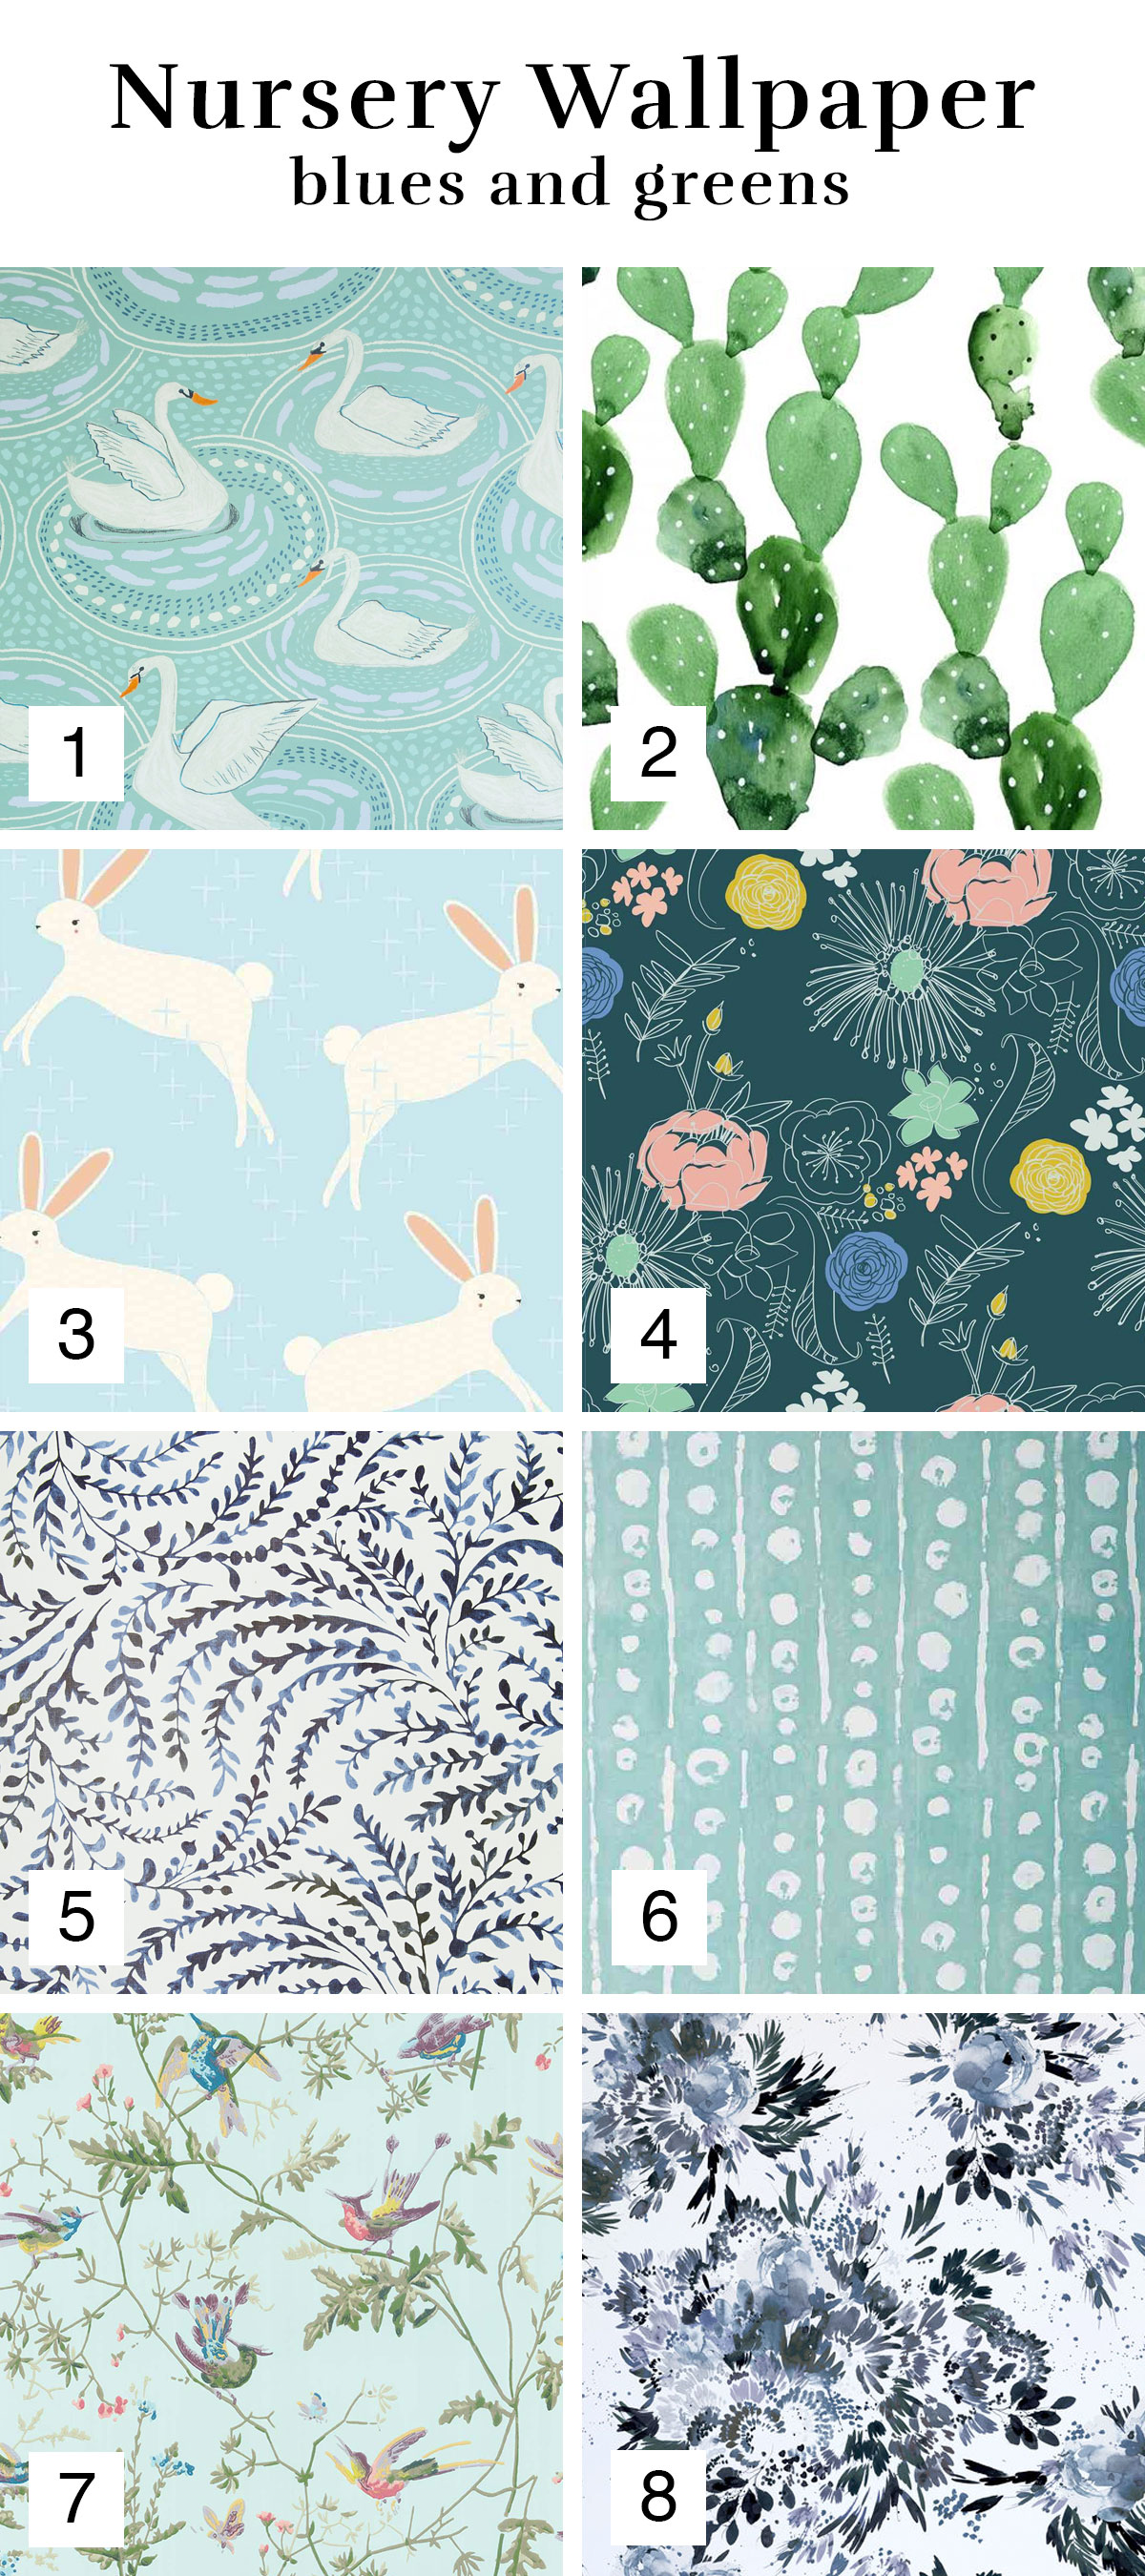 Blue and Green Wallpaper Inspiration Roundup for a Nursery or Girl's Room | Melissa Lynch | melissalynch.com